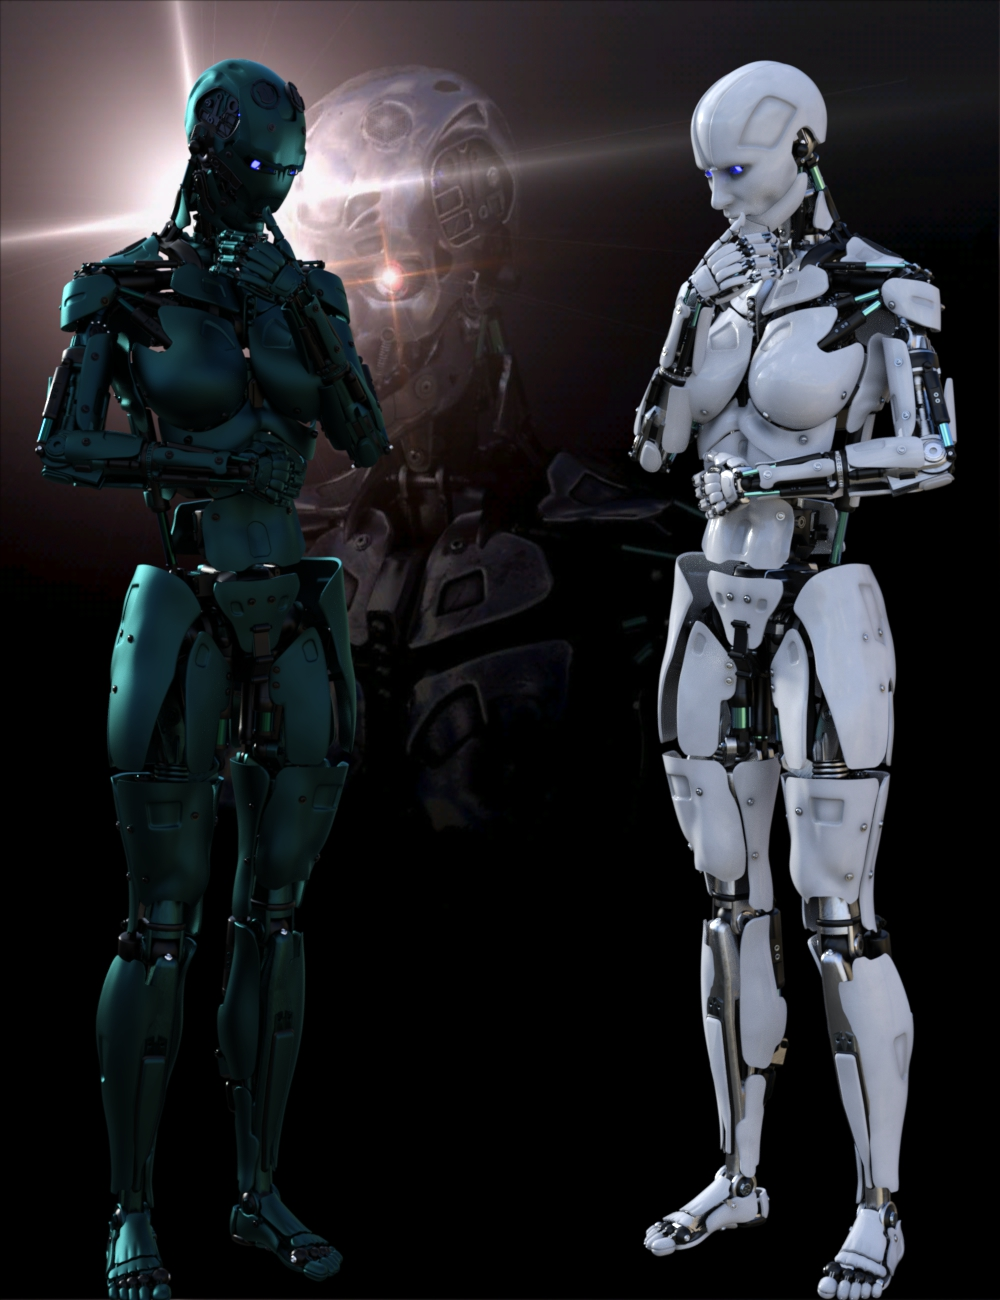 Cyborg Generation 8 Female by: DzFire, 3D Models by Daz 3D